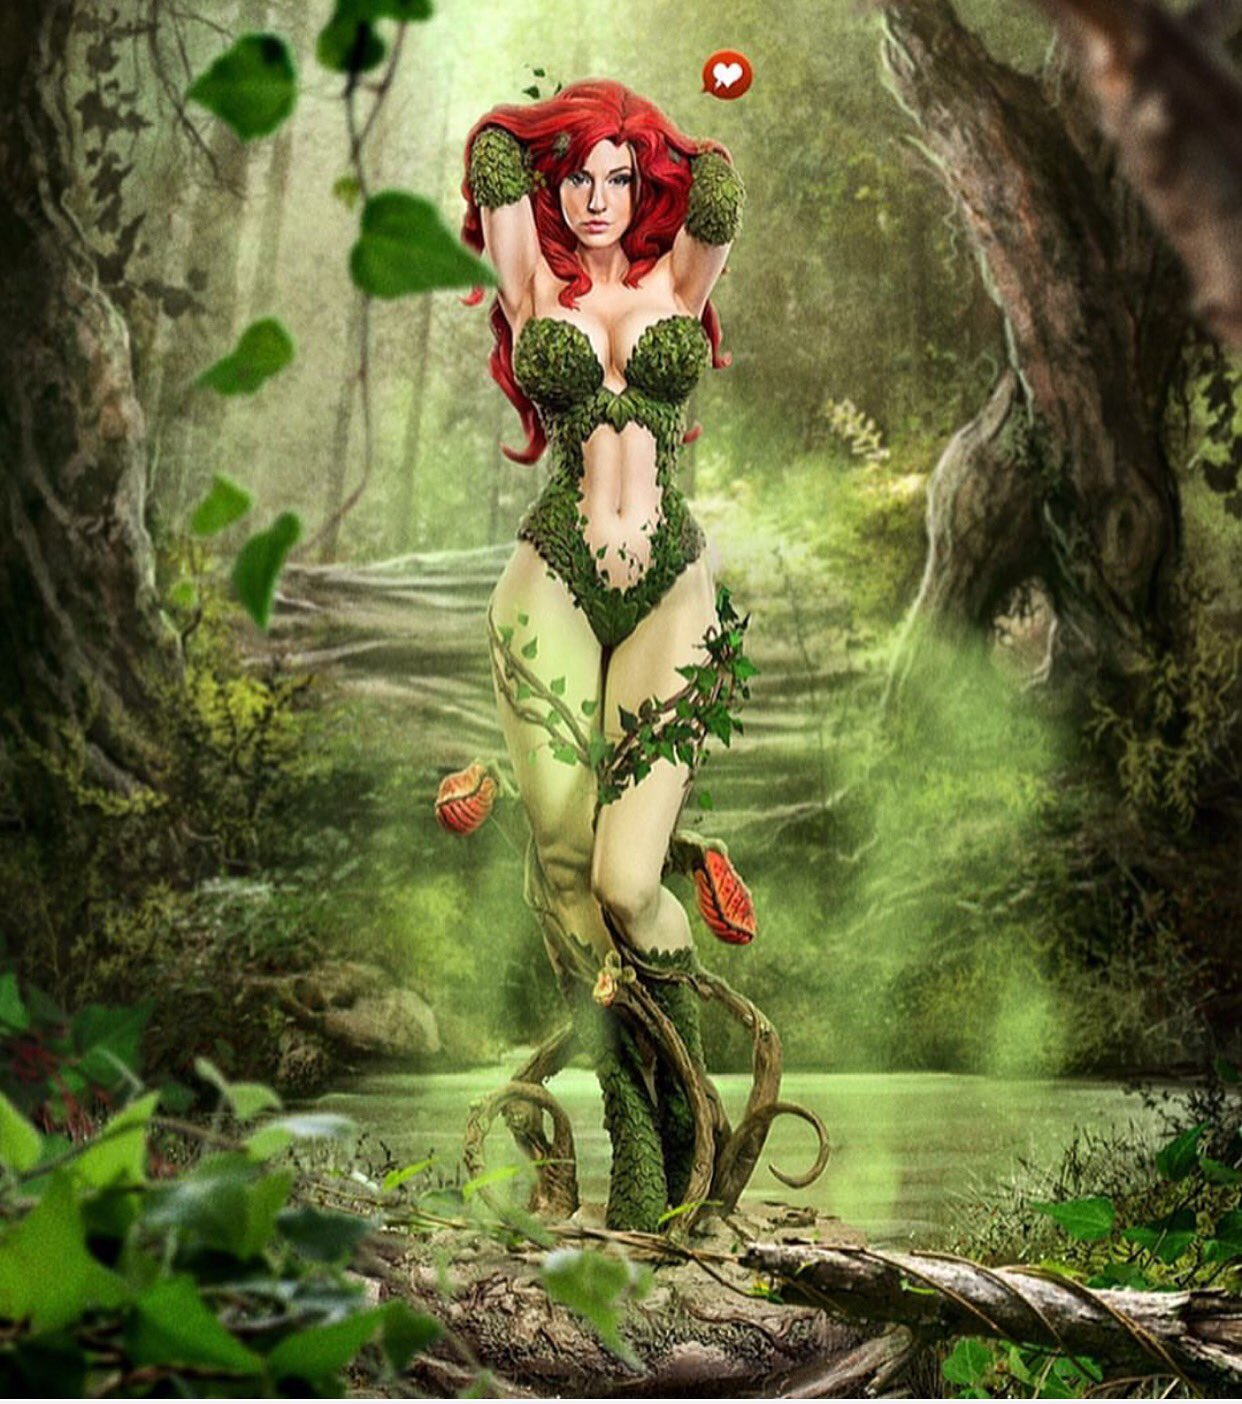 Thanks to @kaethor_ for this awesome artwork!  #fanartfriday #claireanacosplay #poisonivy #fantasy #redhead https://t.co/7ww7VlsODP